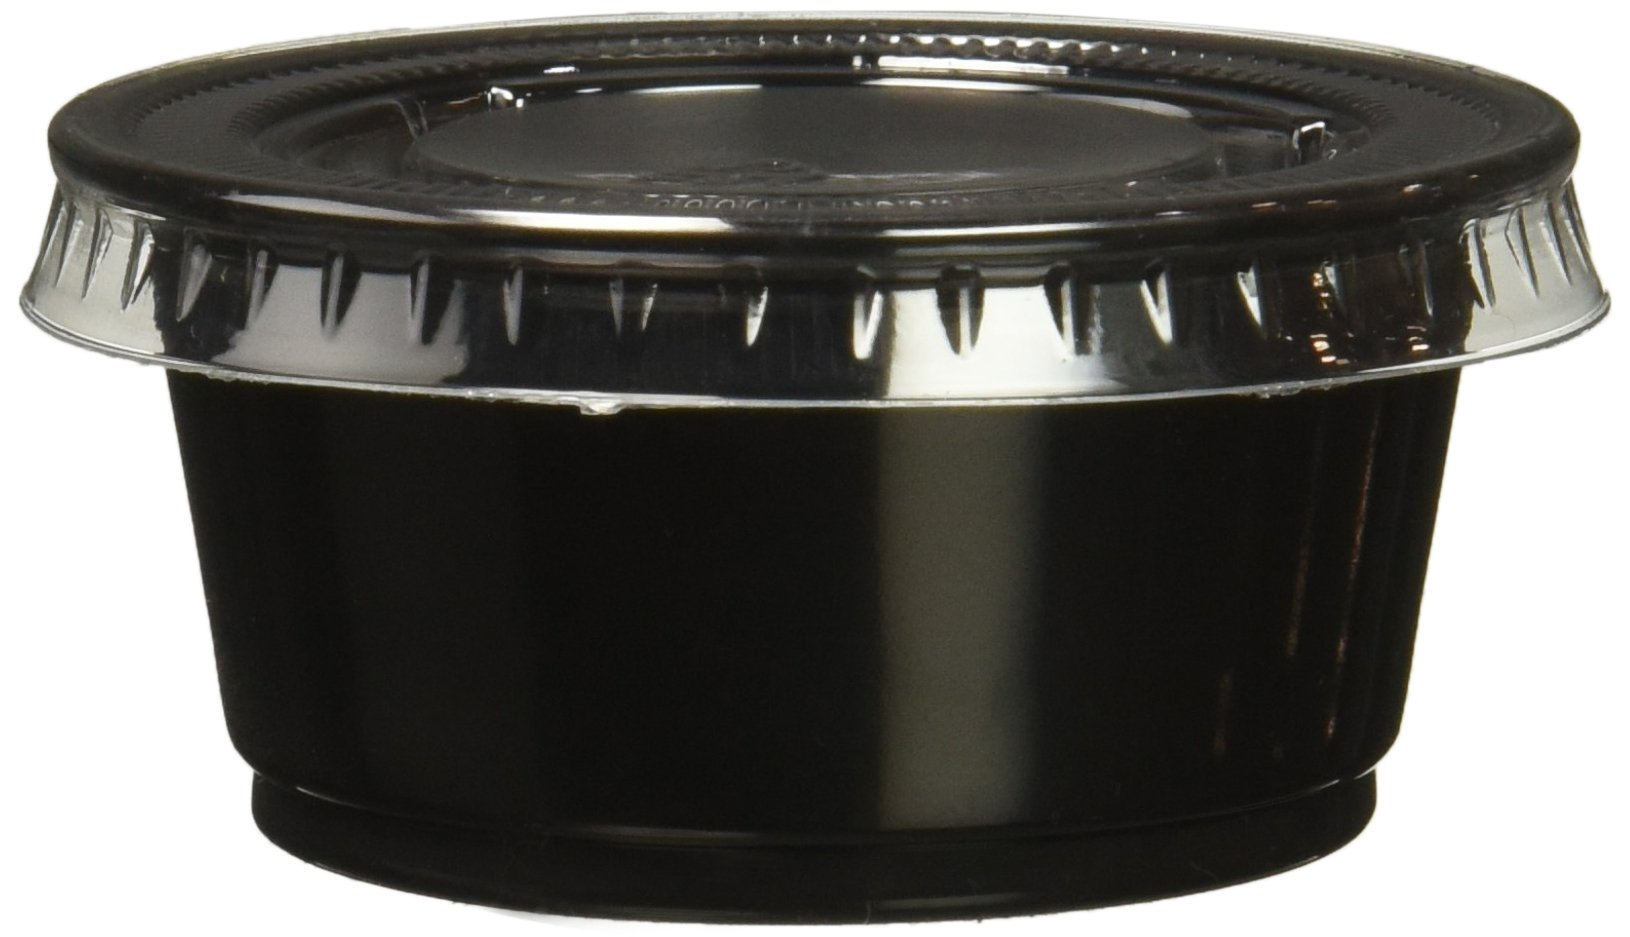 Polar Ice Plastic Black Jello Shot Cups with Lids, 2-Ounce, Black Cups, Package of 500 Cups and Lids by Polar Ice